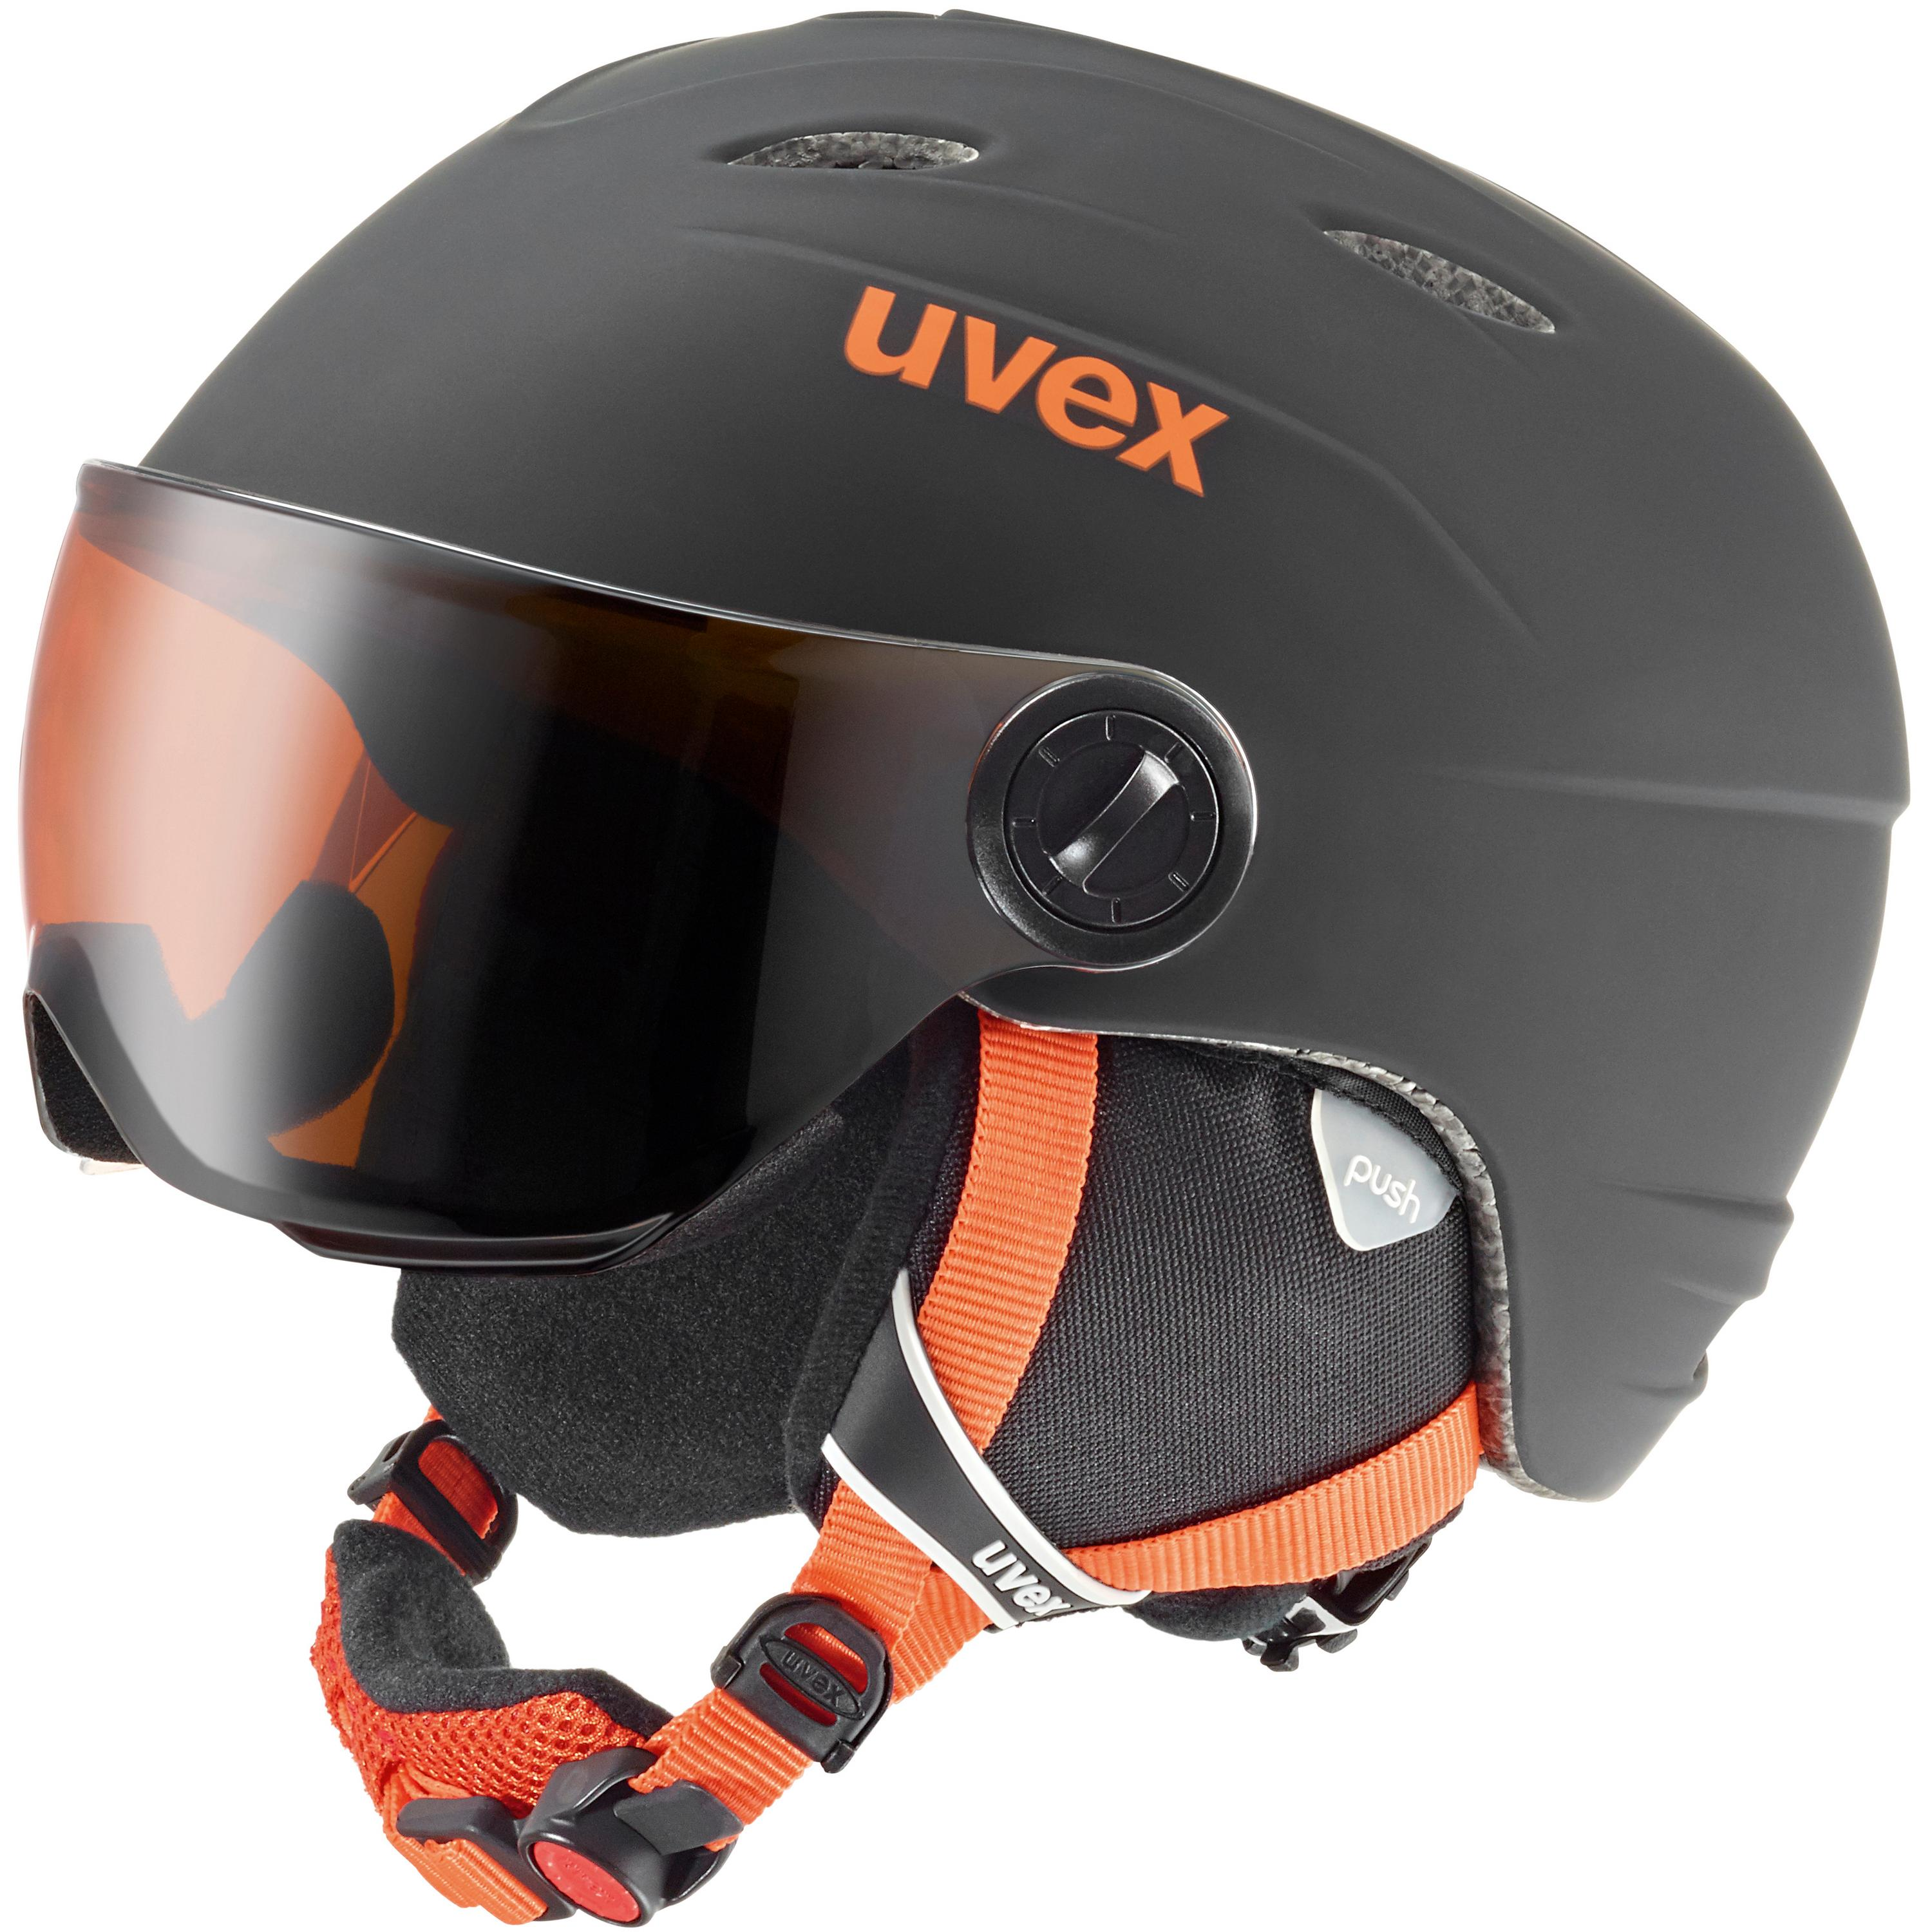 Uvex junior visor pro Skihelm Kinder Helme 52-54 Normal